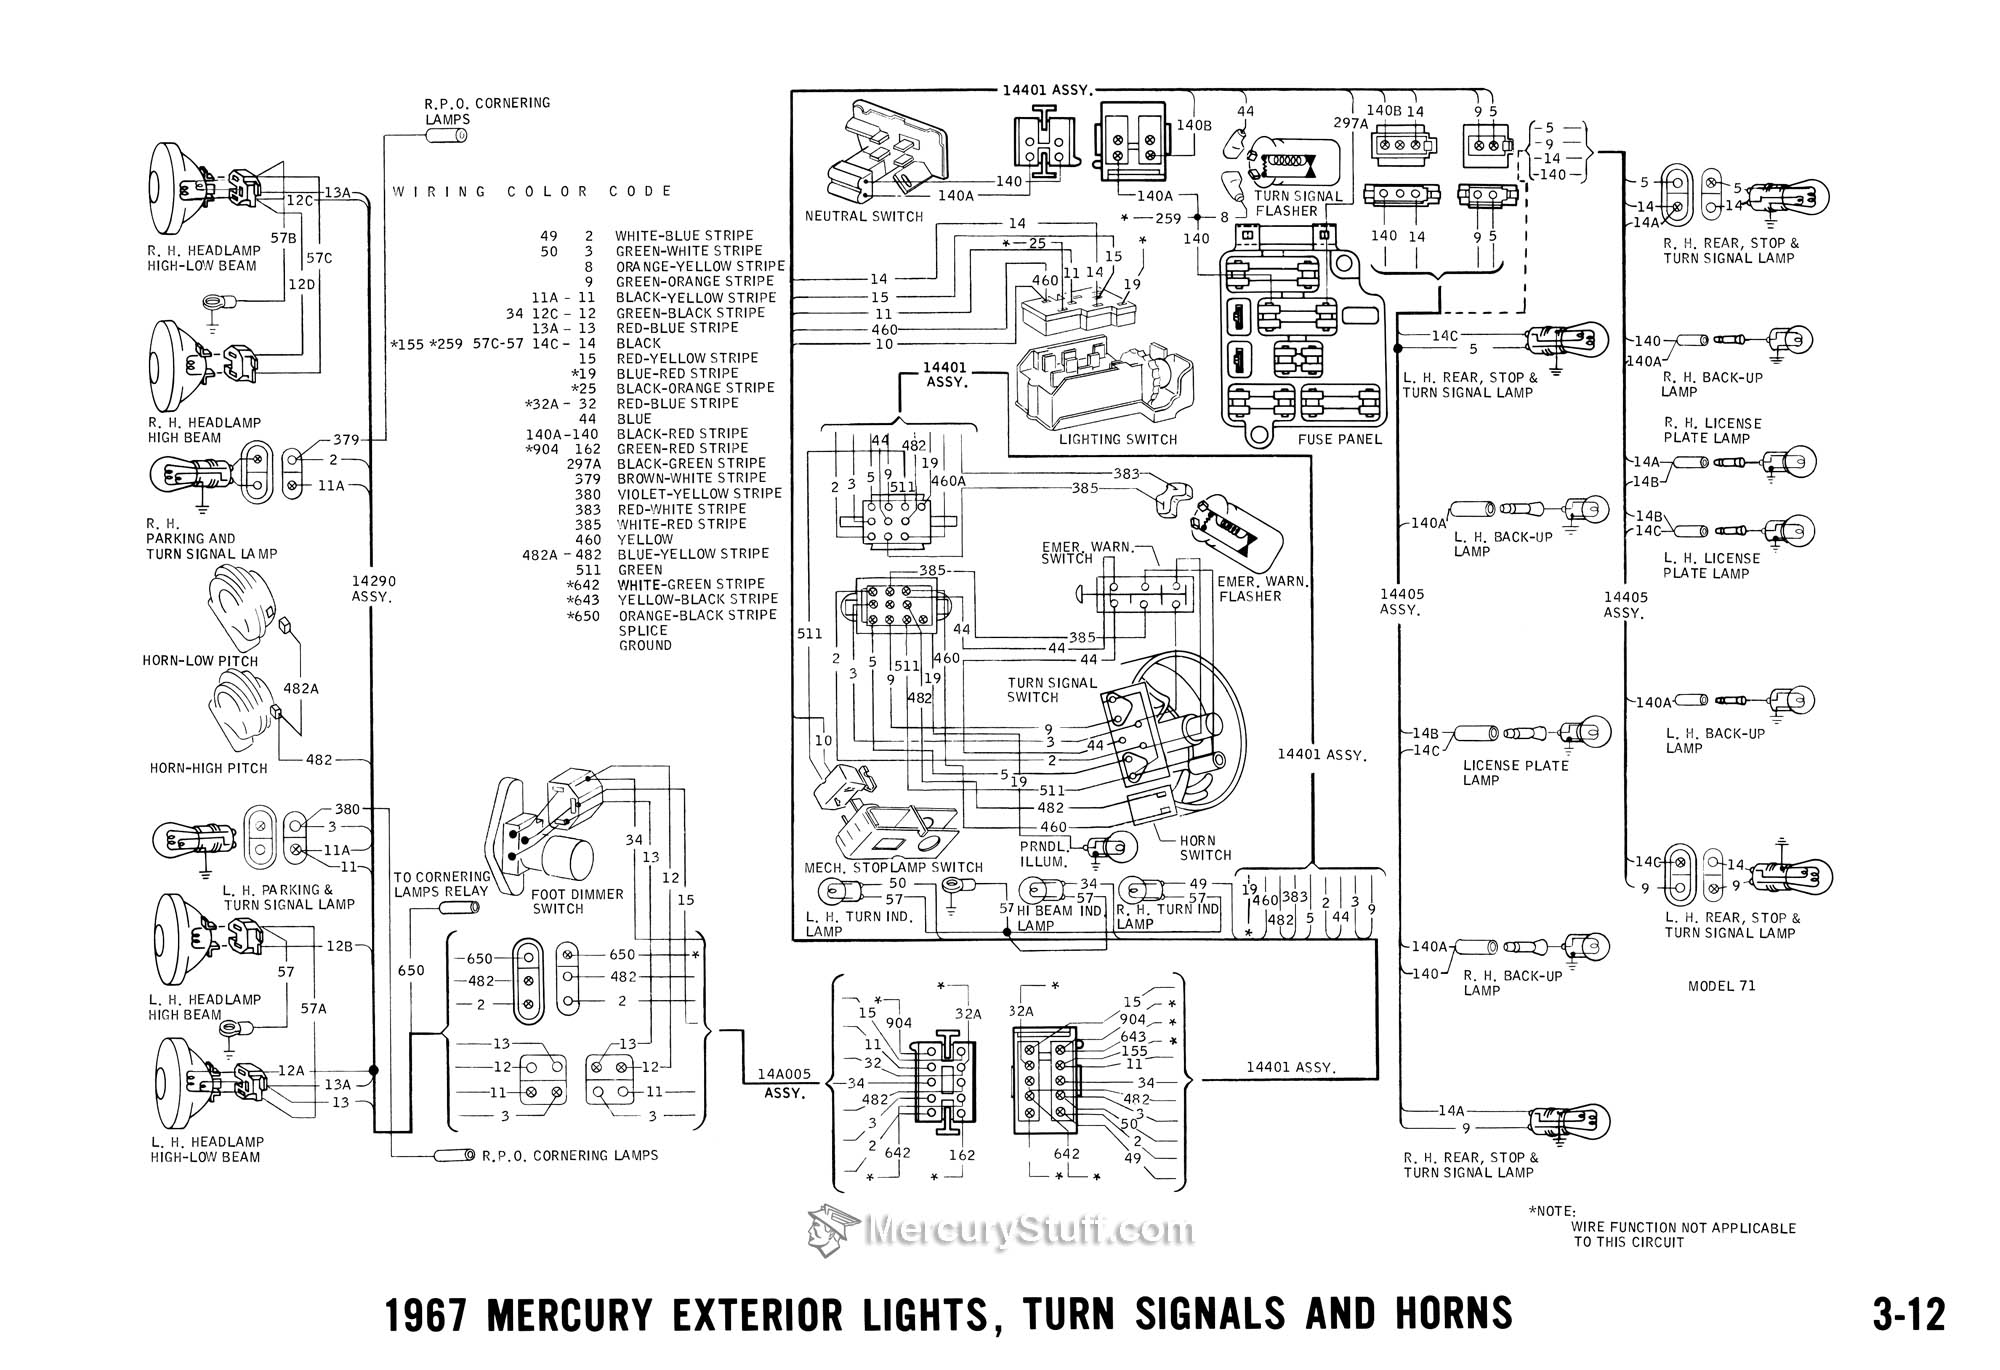 1967 mercury exterior lights turn signals horns wiring diagram 2006 mercury grand marquis the wiring diagram mercury 14 pin wiring harness diagram at gsmx.co